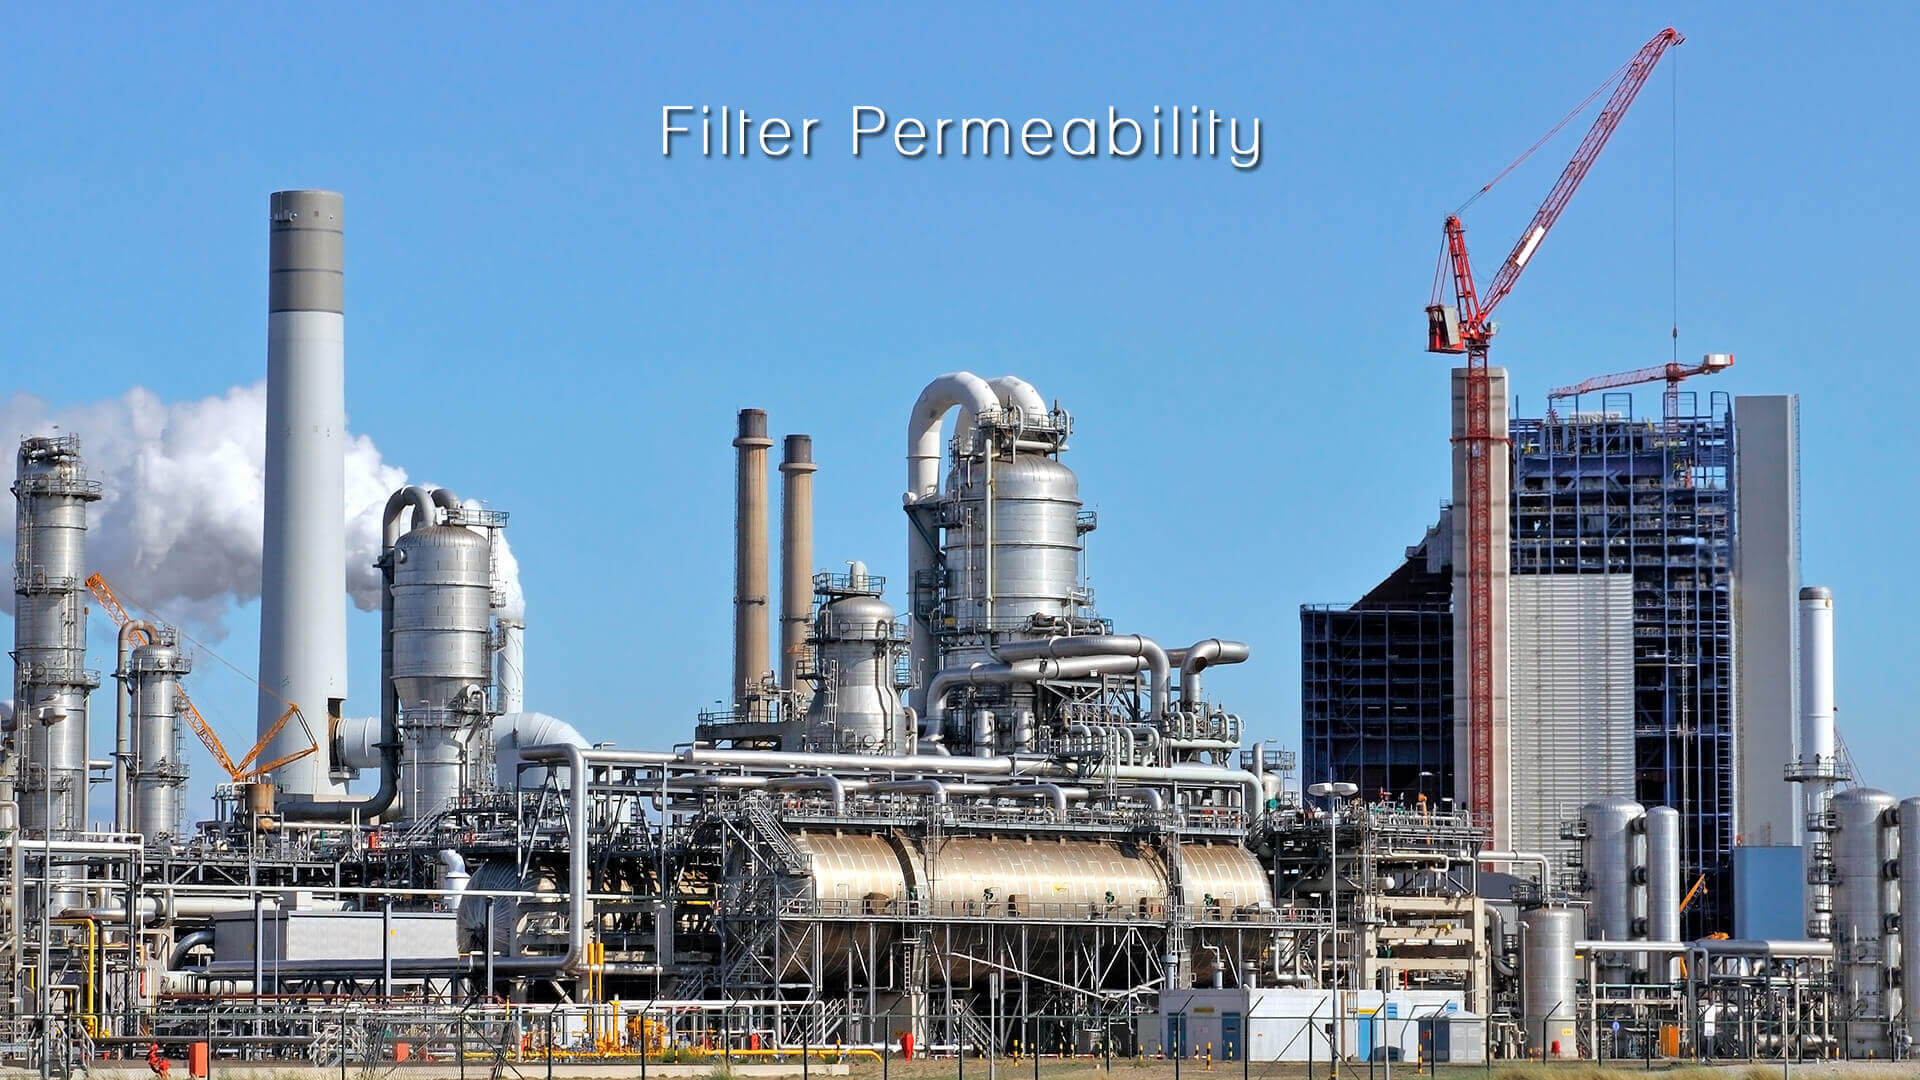 Filter Permeability